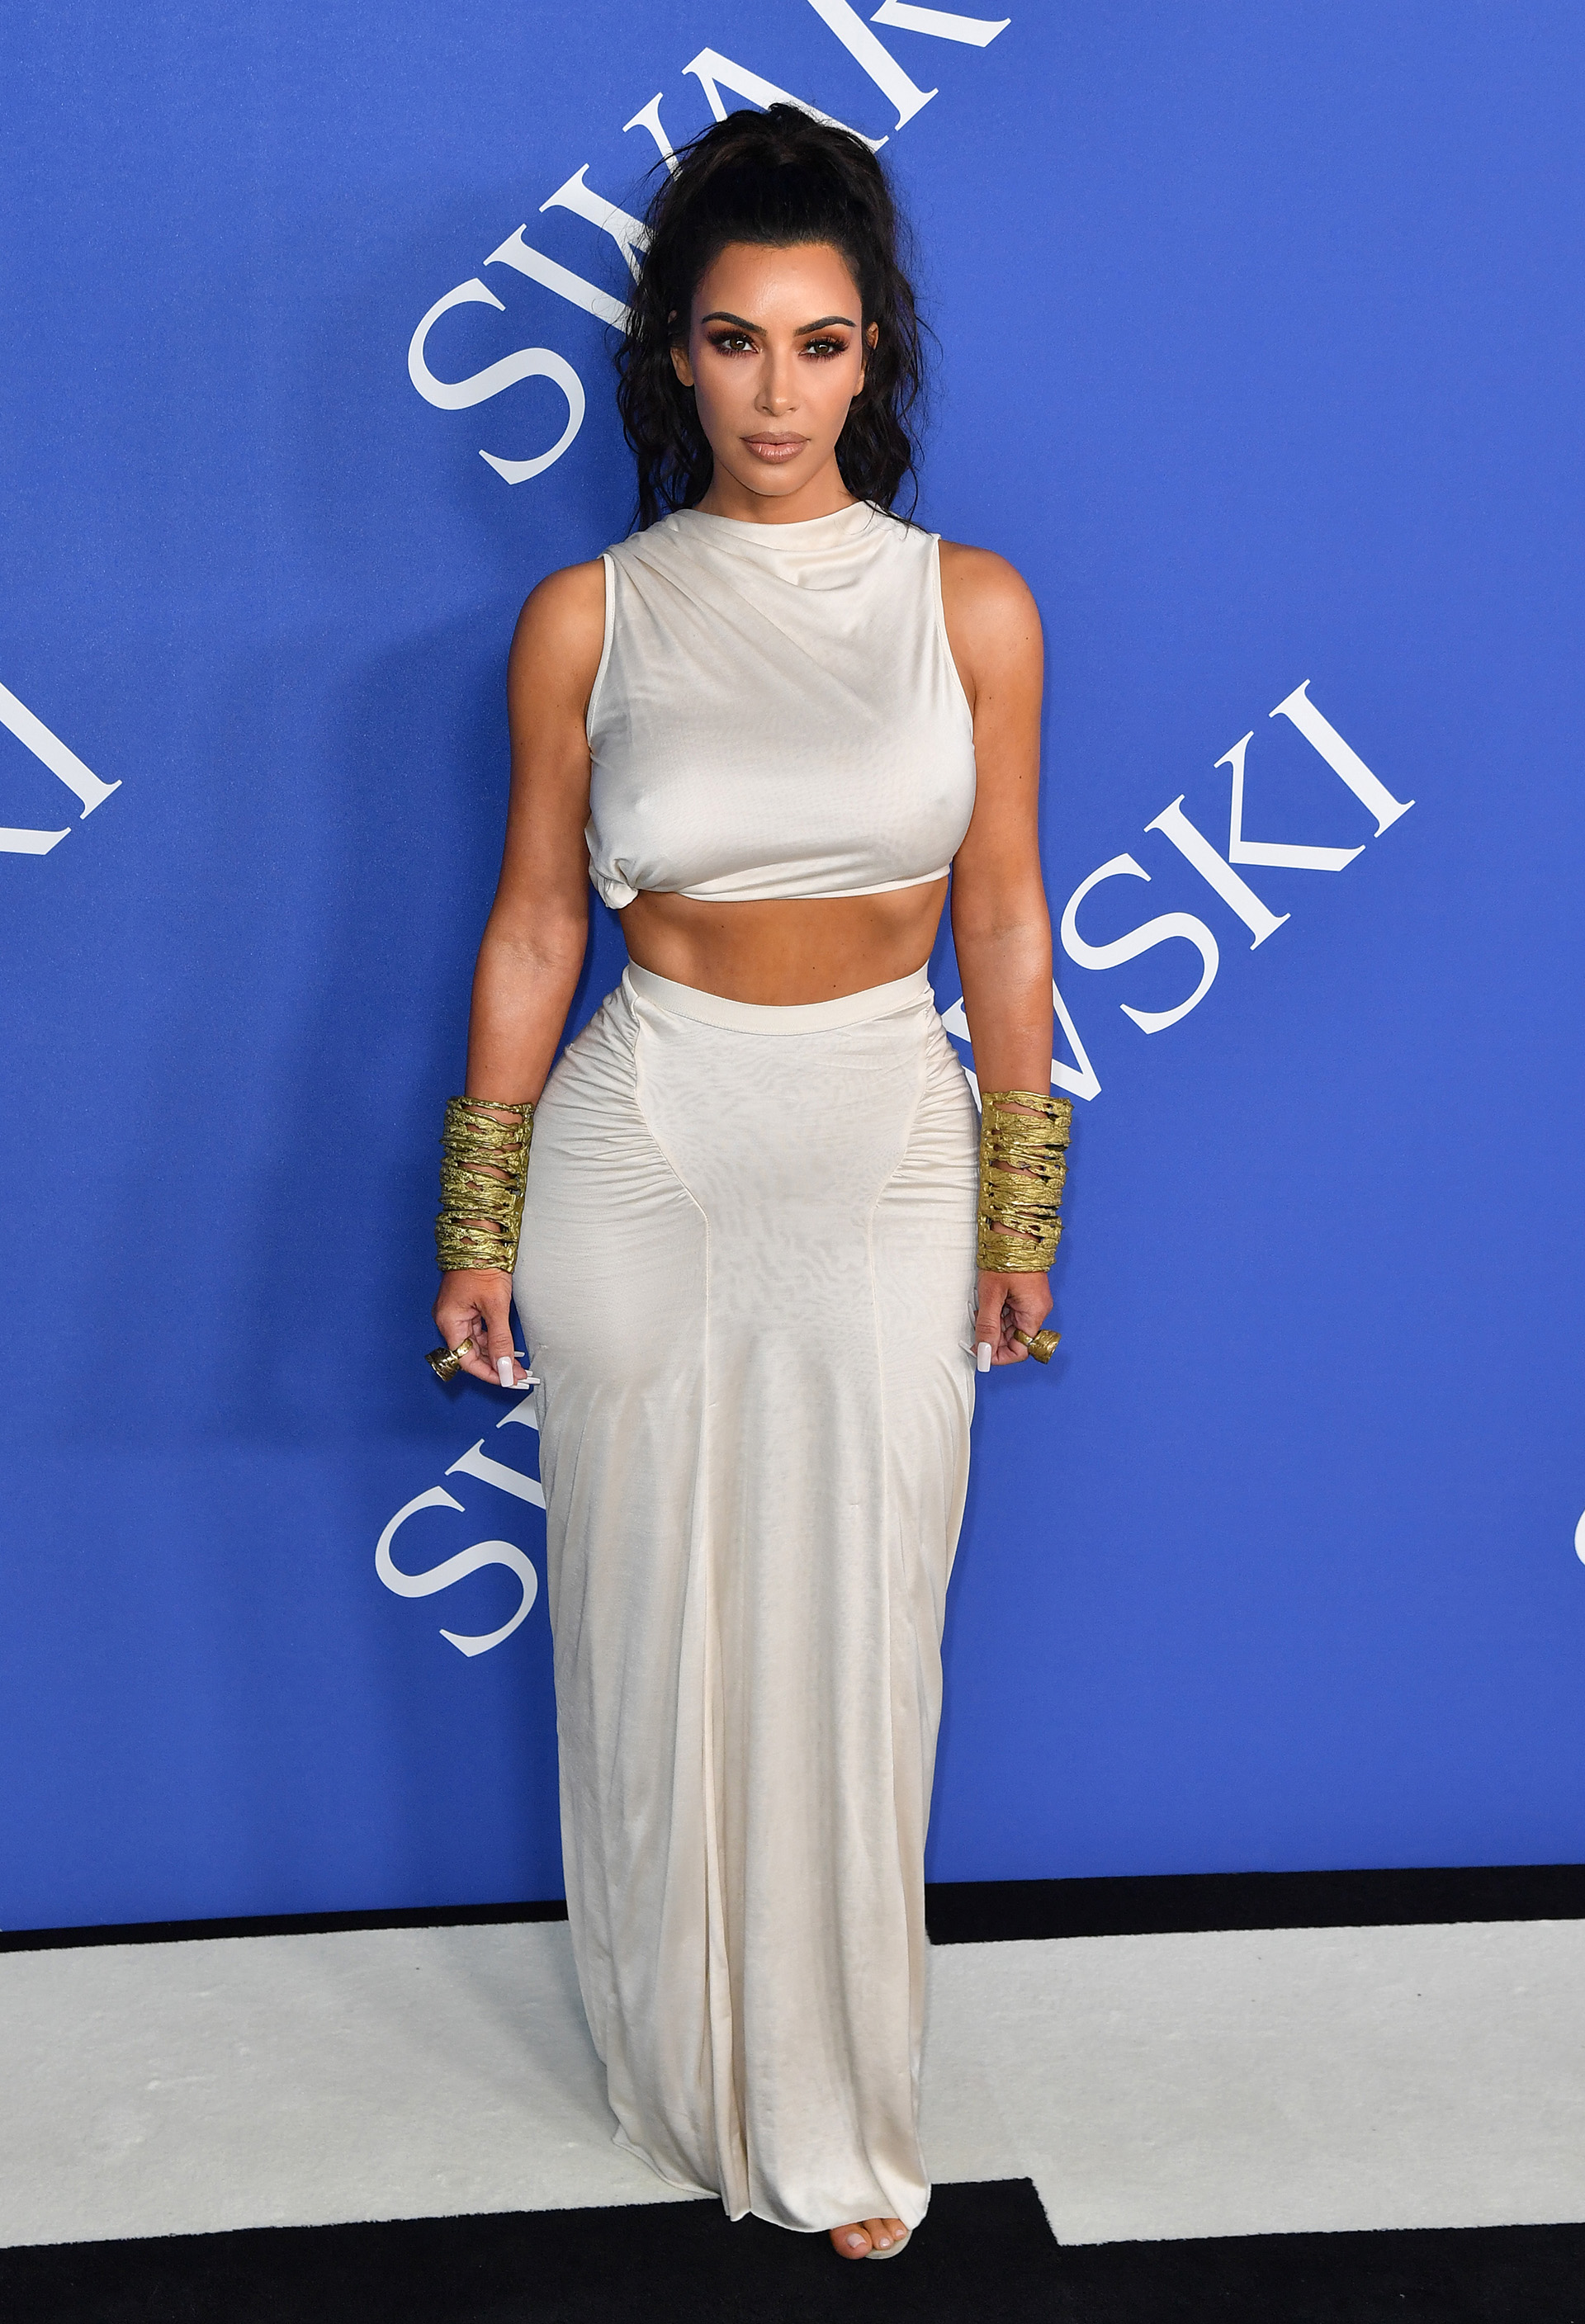 Kim Kardashian con un look sexy a su llegada a la entrega de los CFDA Fashion Awards 2018, que se llevó a cabo en The Brooklyn Museum, en New York